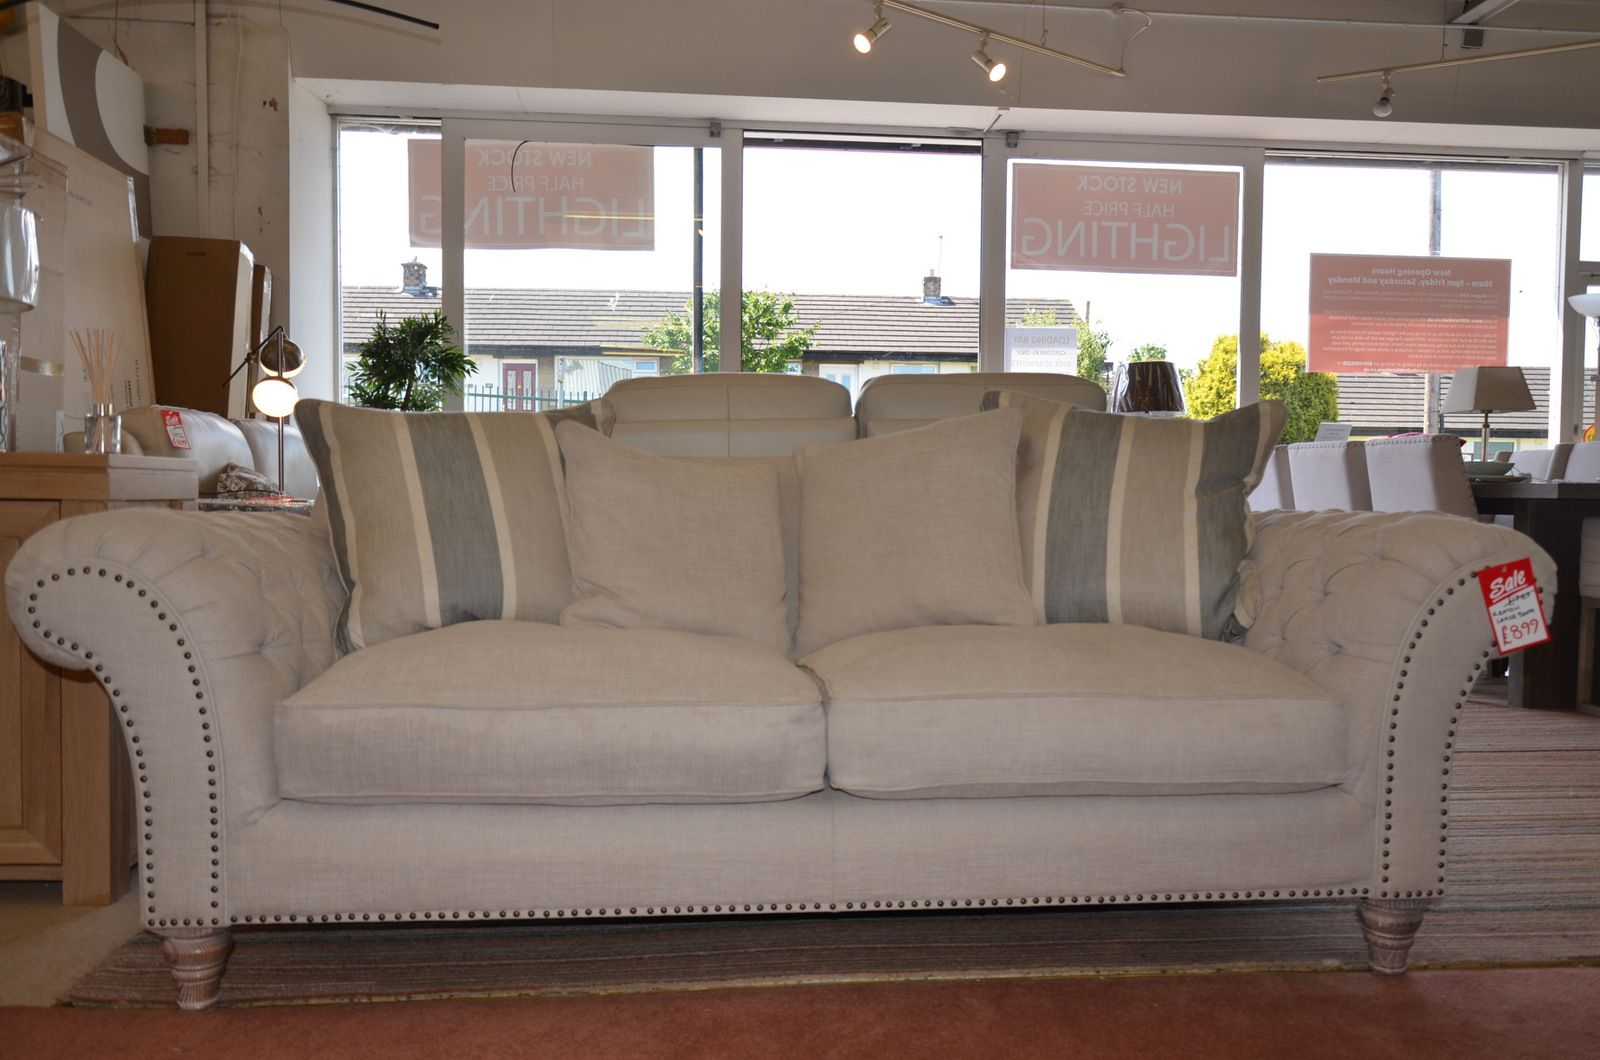 Keaton Large Chesterfield Sofa in Pale Beige Fabric